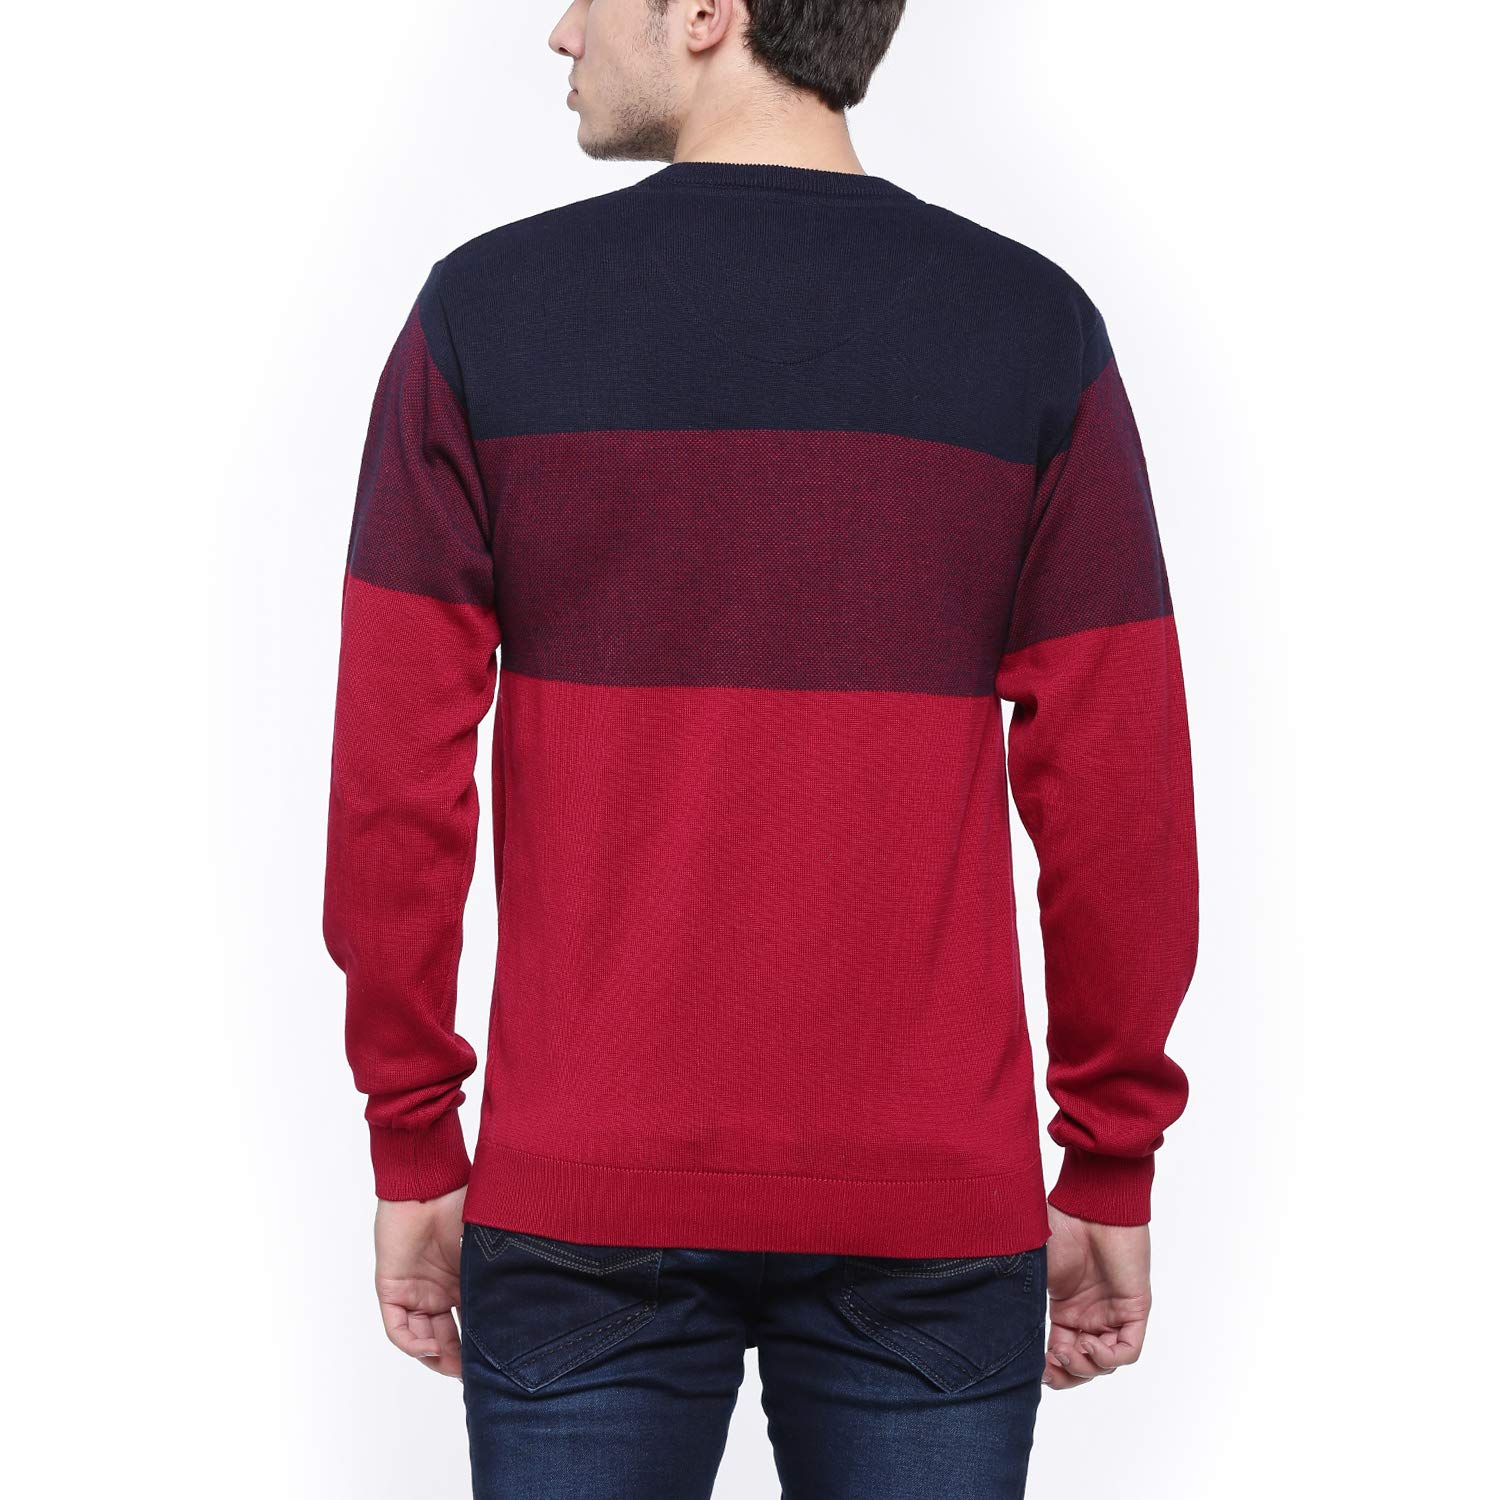 t base Red & Black Stripe Sweater Sweater for Mens: Amazon